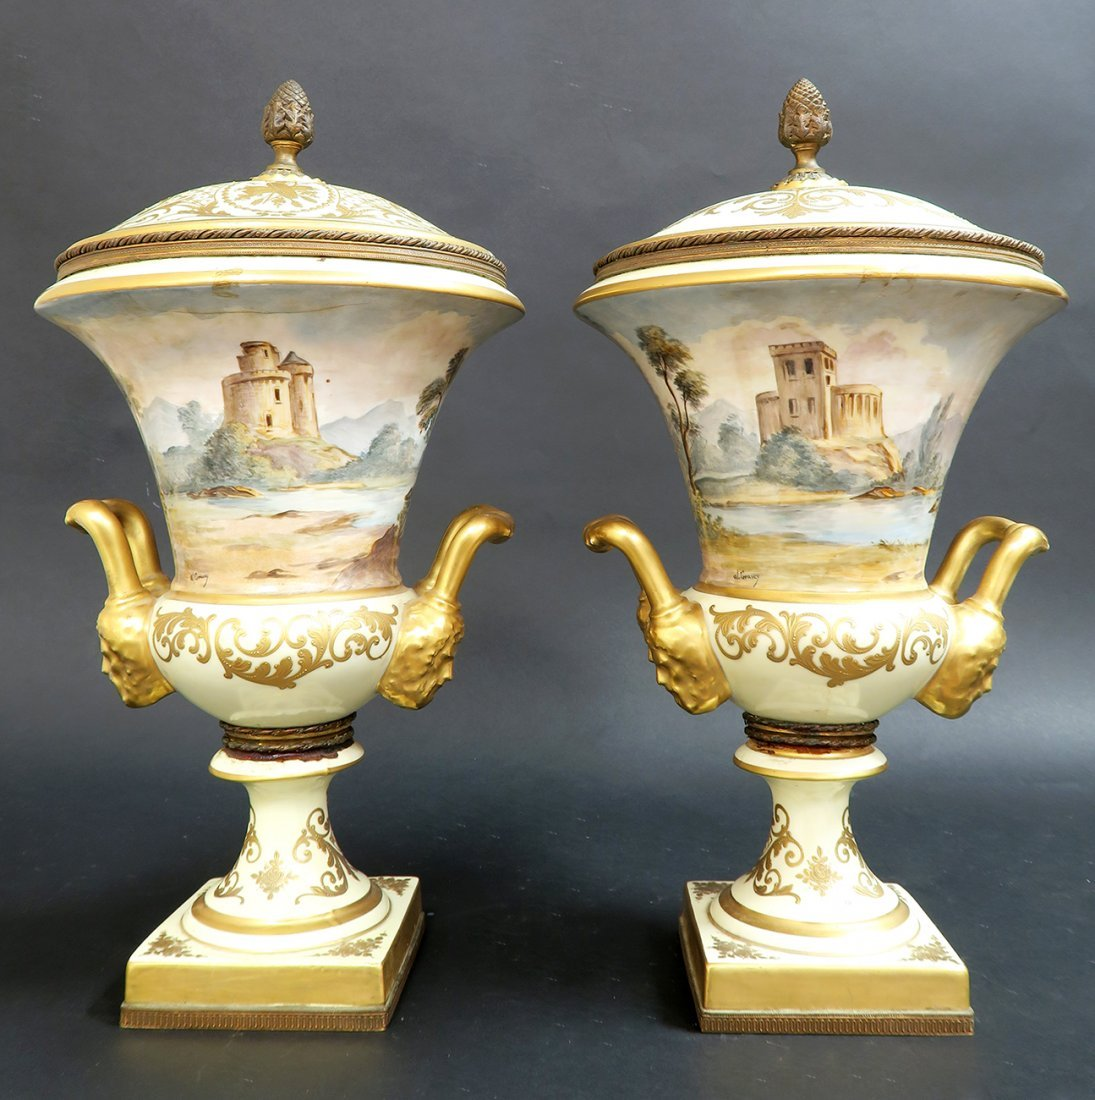 Large Pair of French 19th C. Hand Painted Sevres Vases - 4